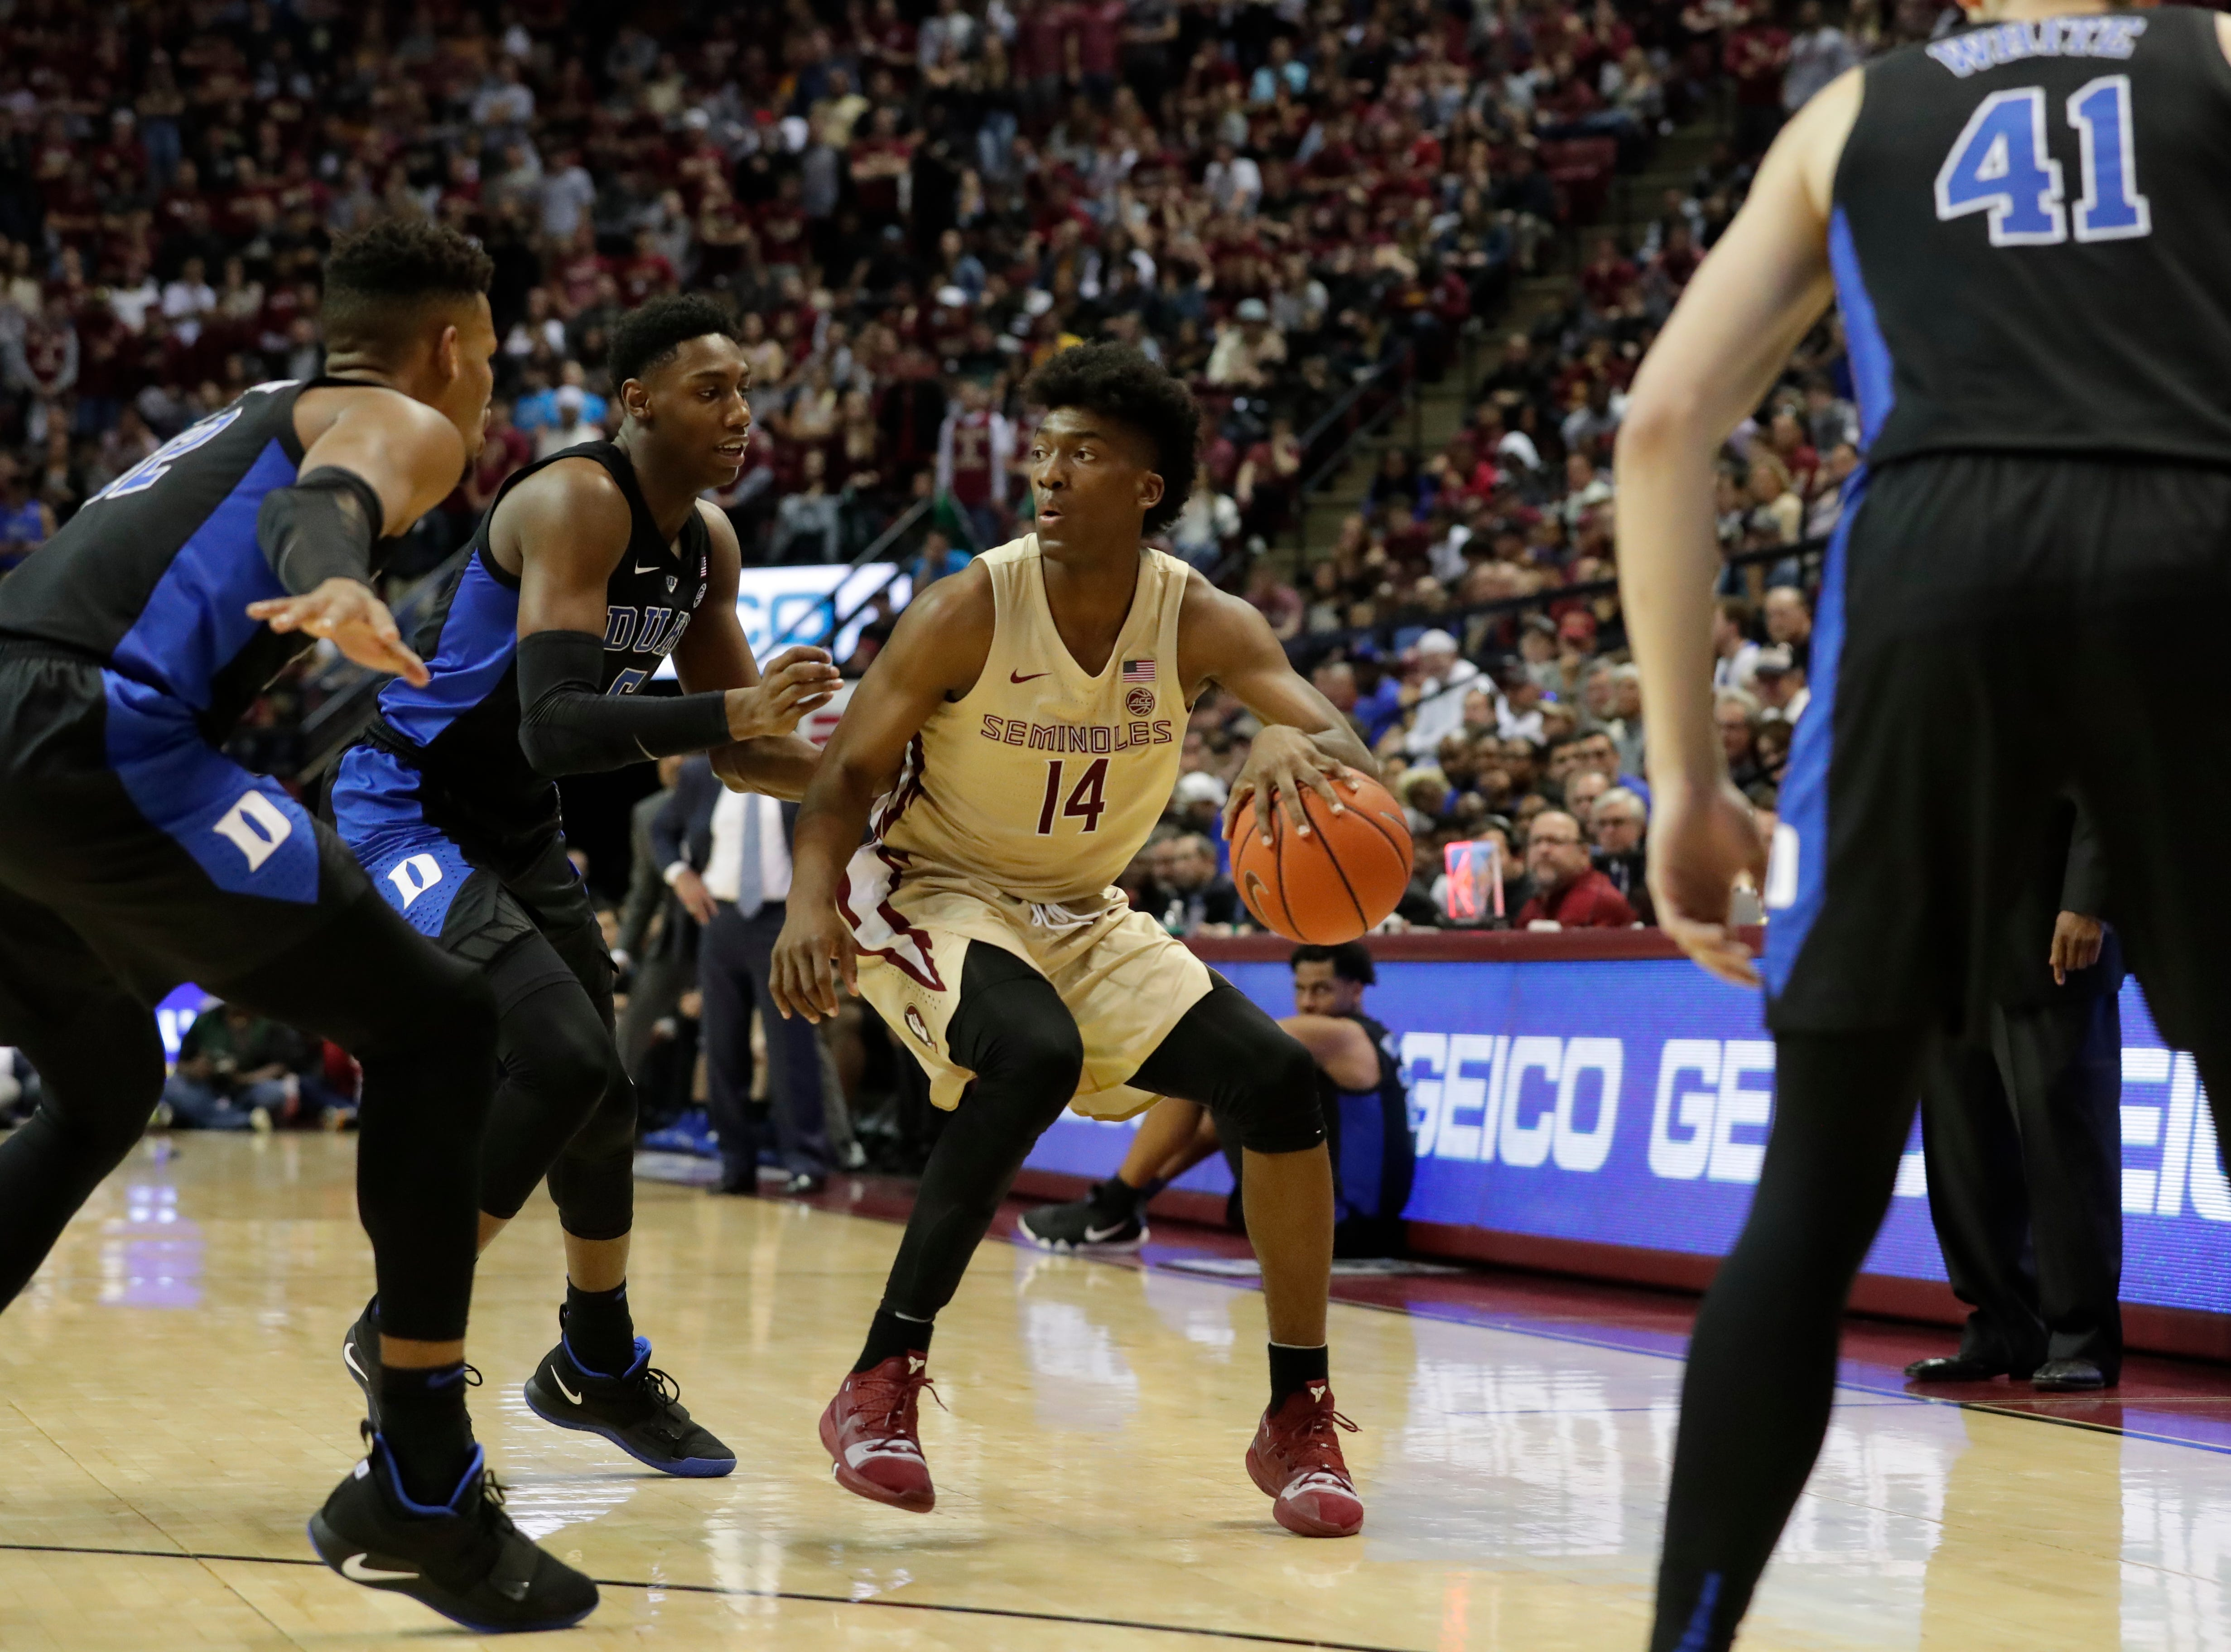 Florida State Seminoles guard Terance Mann (14) looks for assistance from a teammate as multiple defenders begin to surround him. Ranked 13 in the ACC, the Florida State Seminoles host the number 1 team, the Duke Blue Devils, at the Tucker Civic Center, Saturday, Jan. 12, 2019.